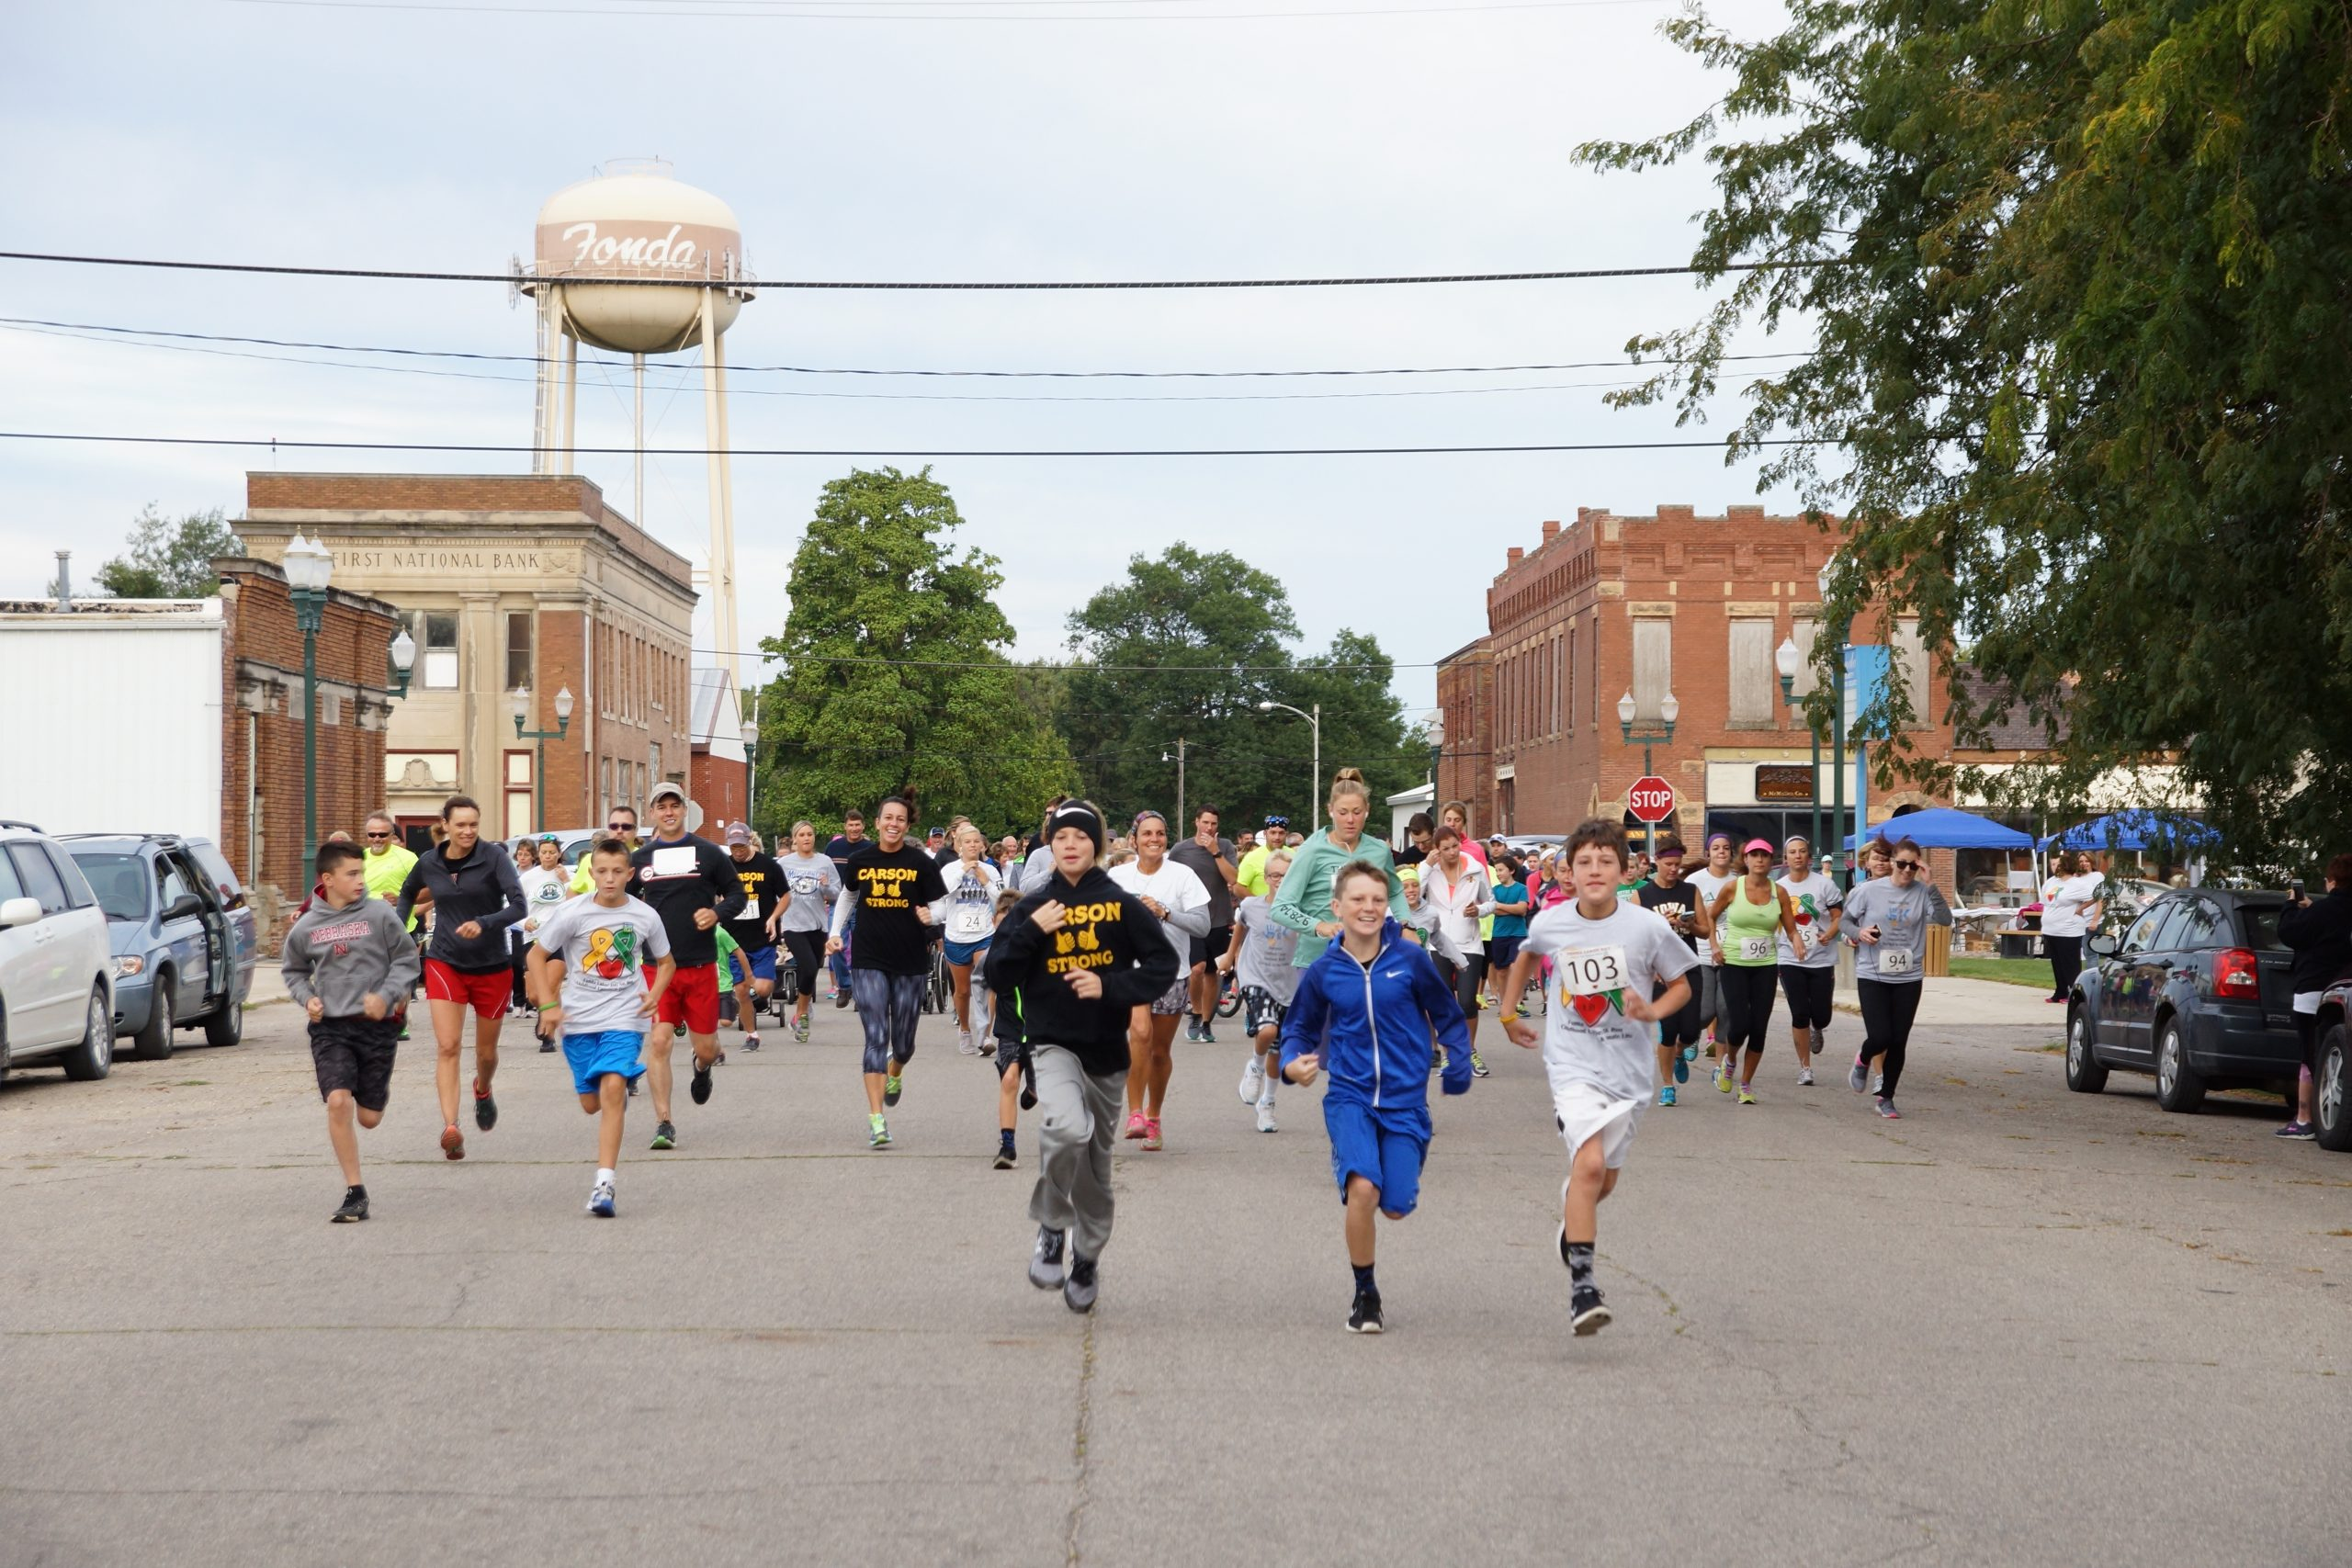 Runners at 5K during Fonda Labor Day Celrbation 2016